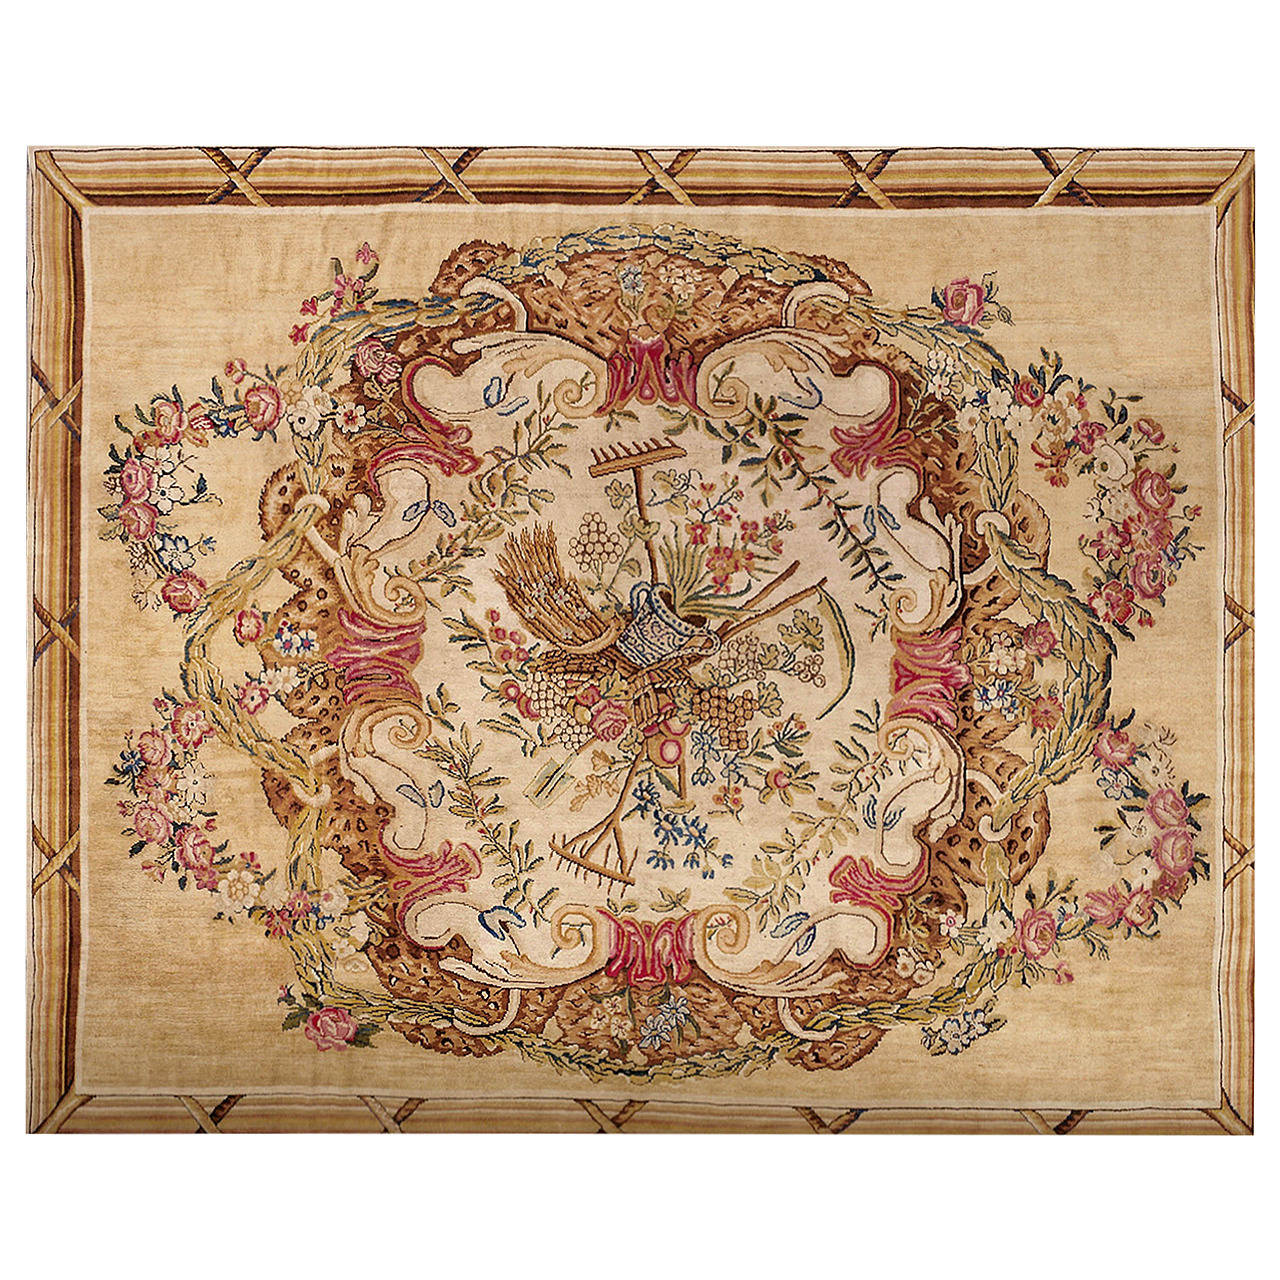 French Savonnerie Carpet, Manufactory Of Aubusson, 18th